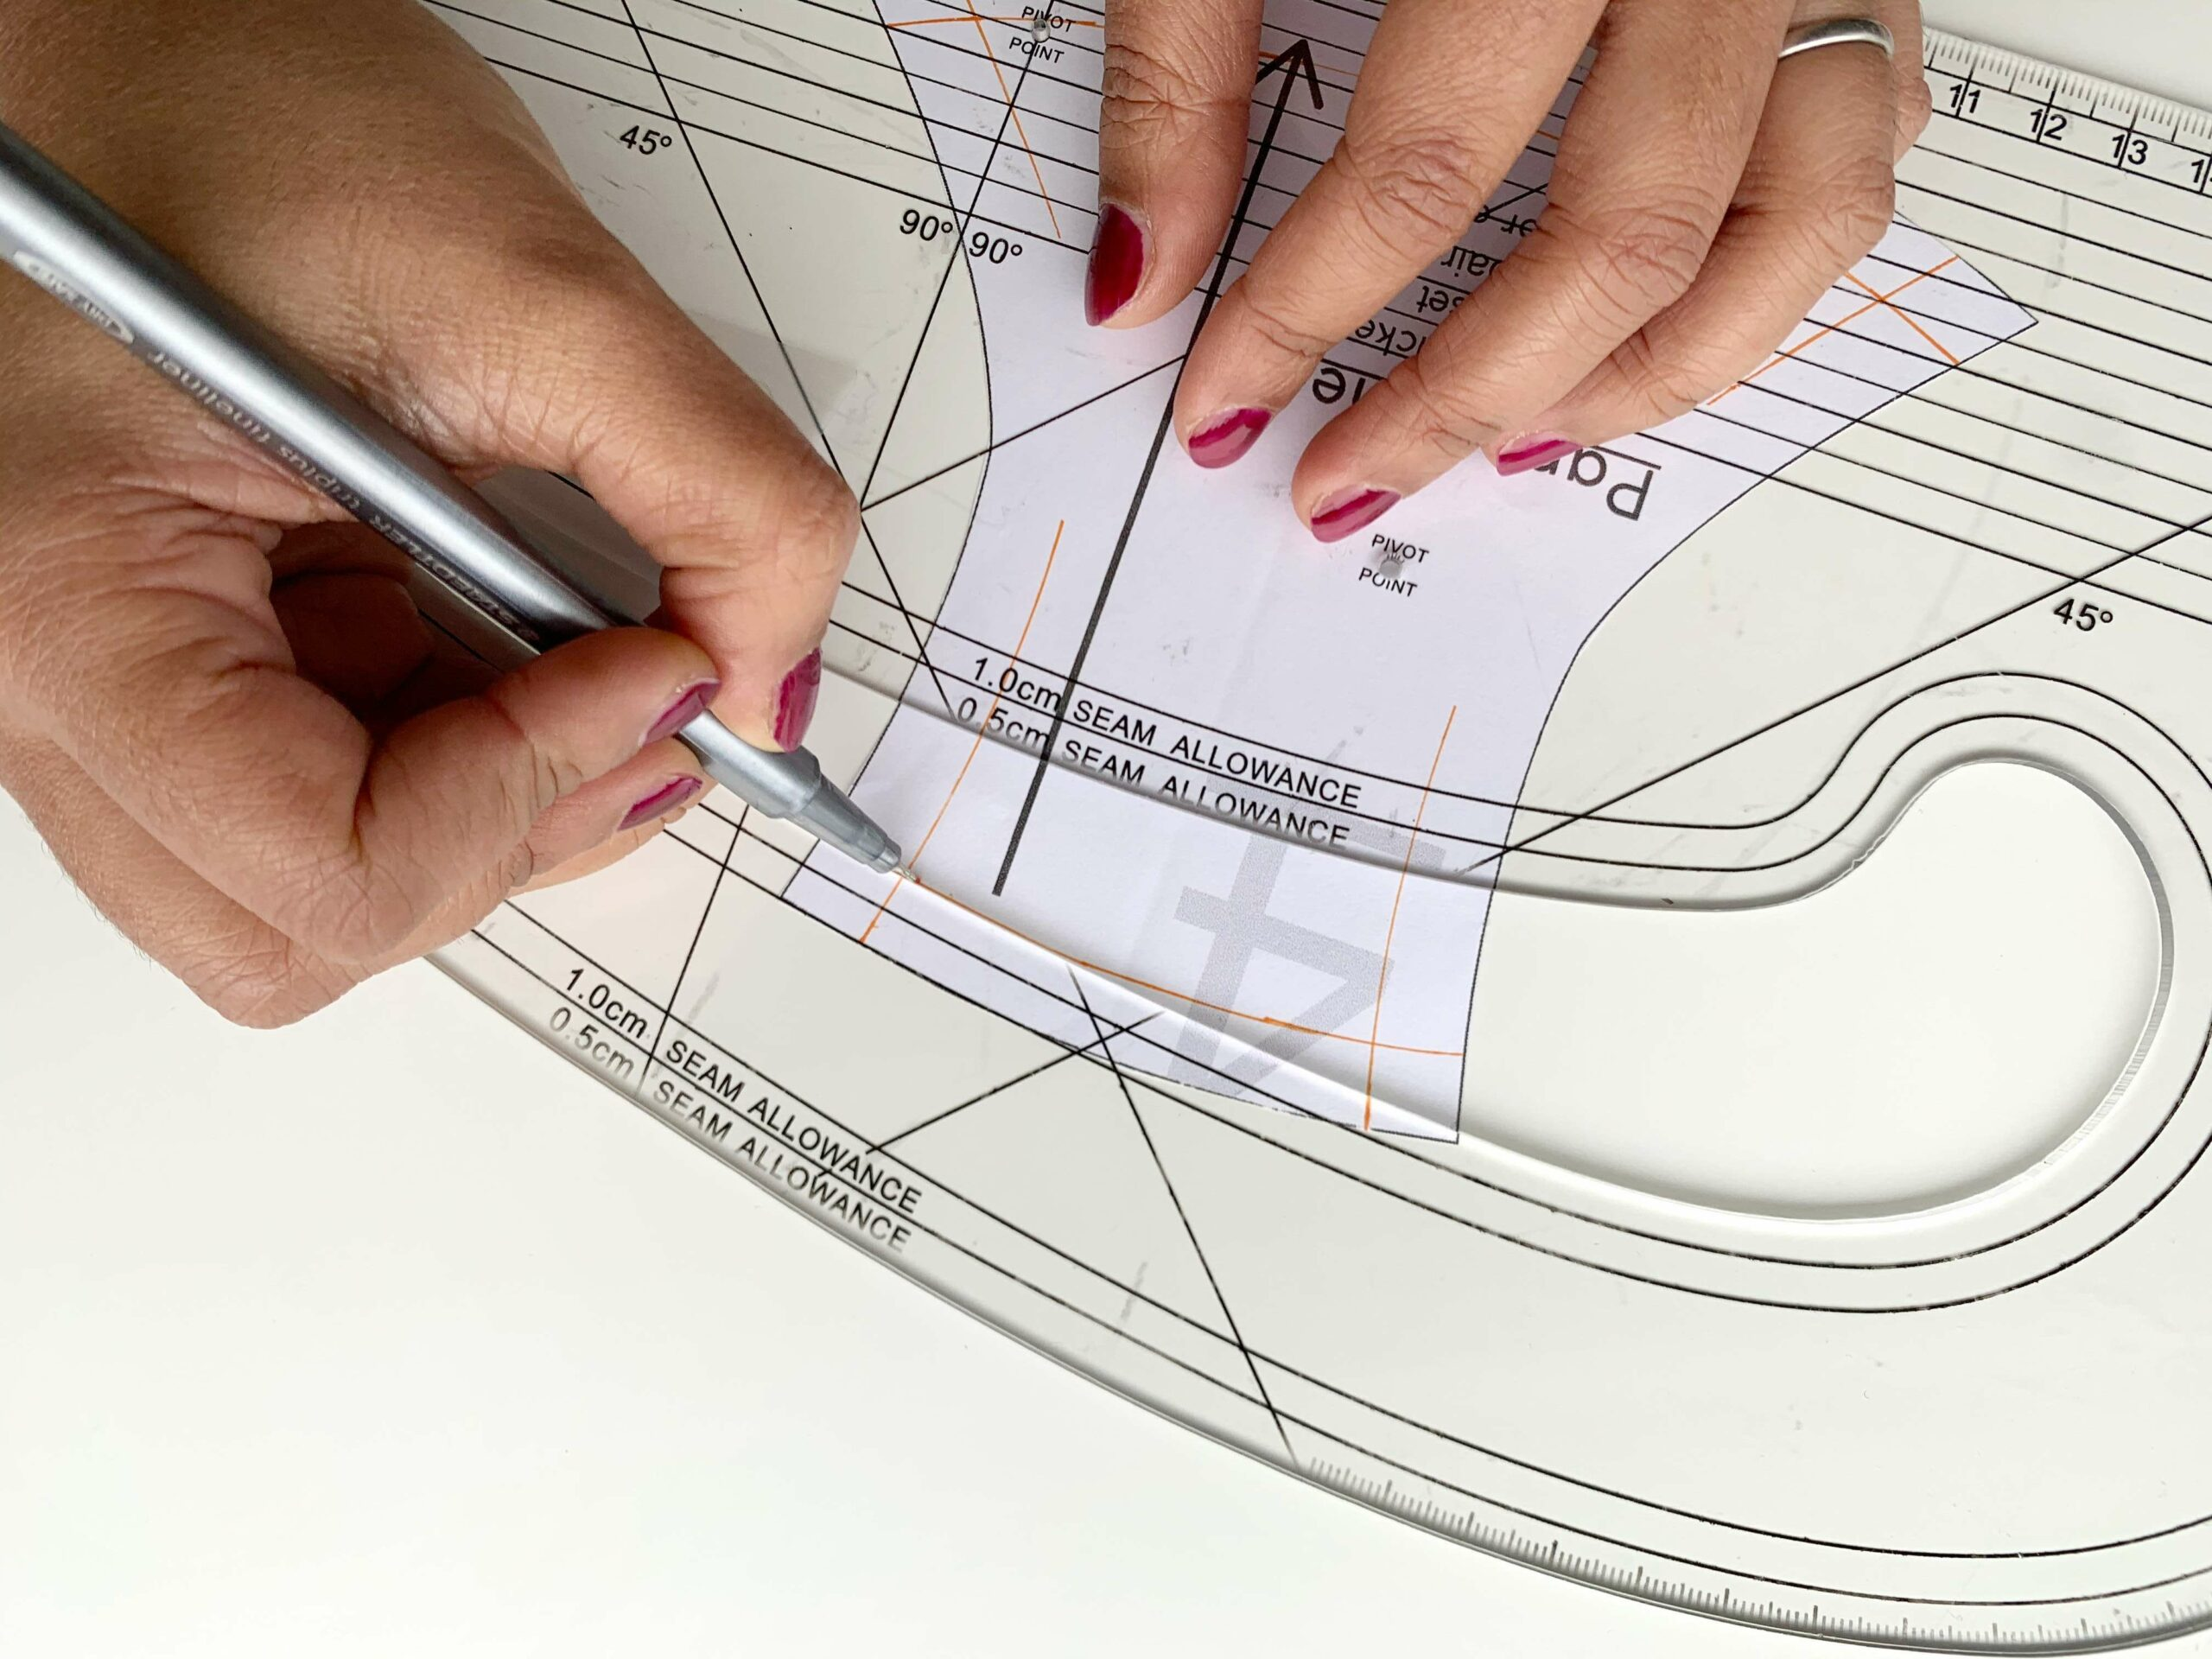 Drafting the new underwear pattern by marking stitch lines on the paper